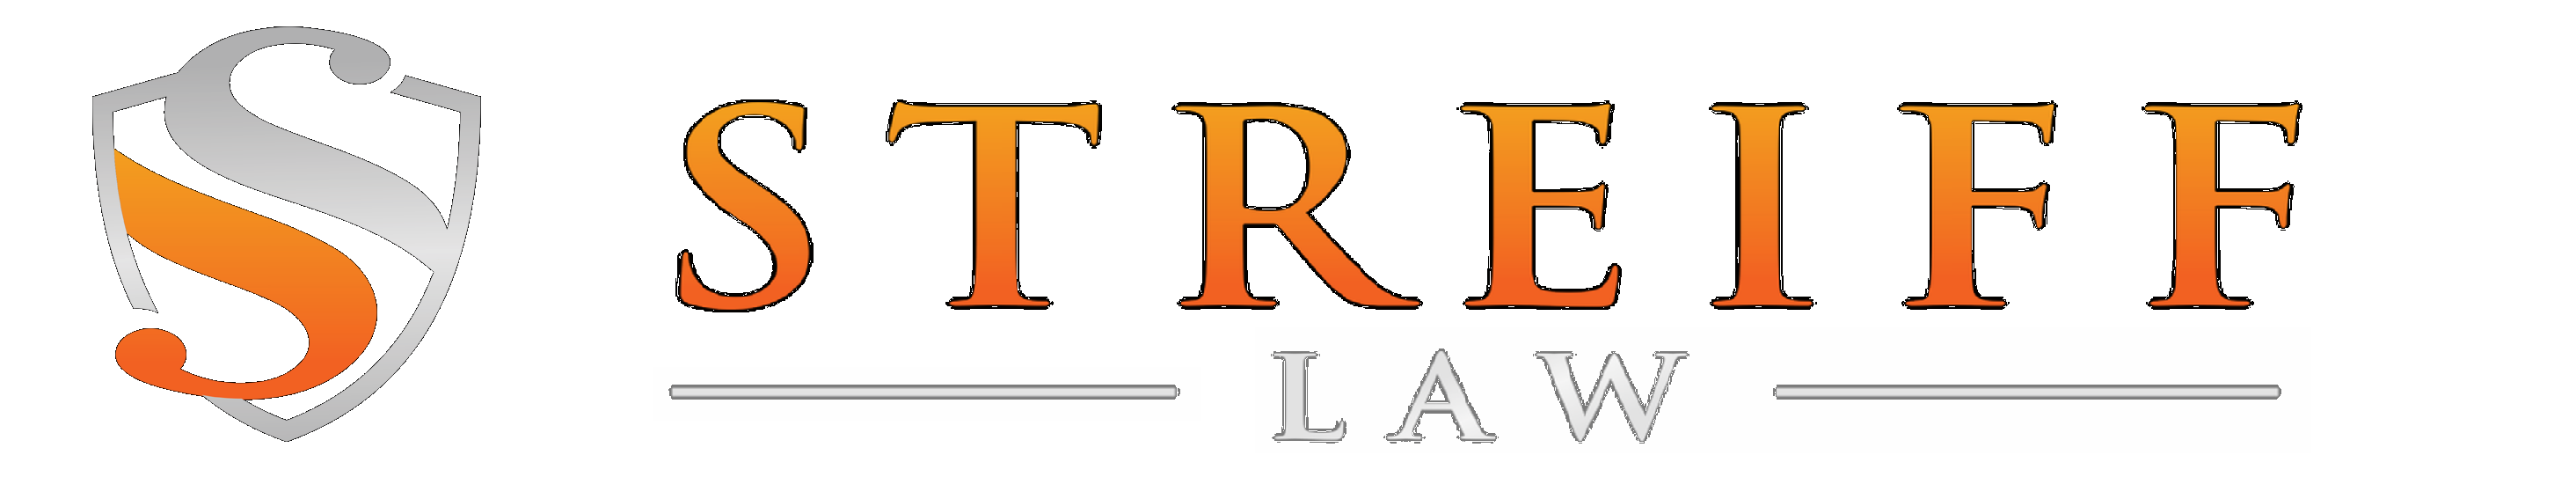 Streiff Law seitliches logo